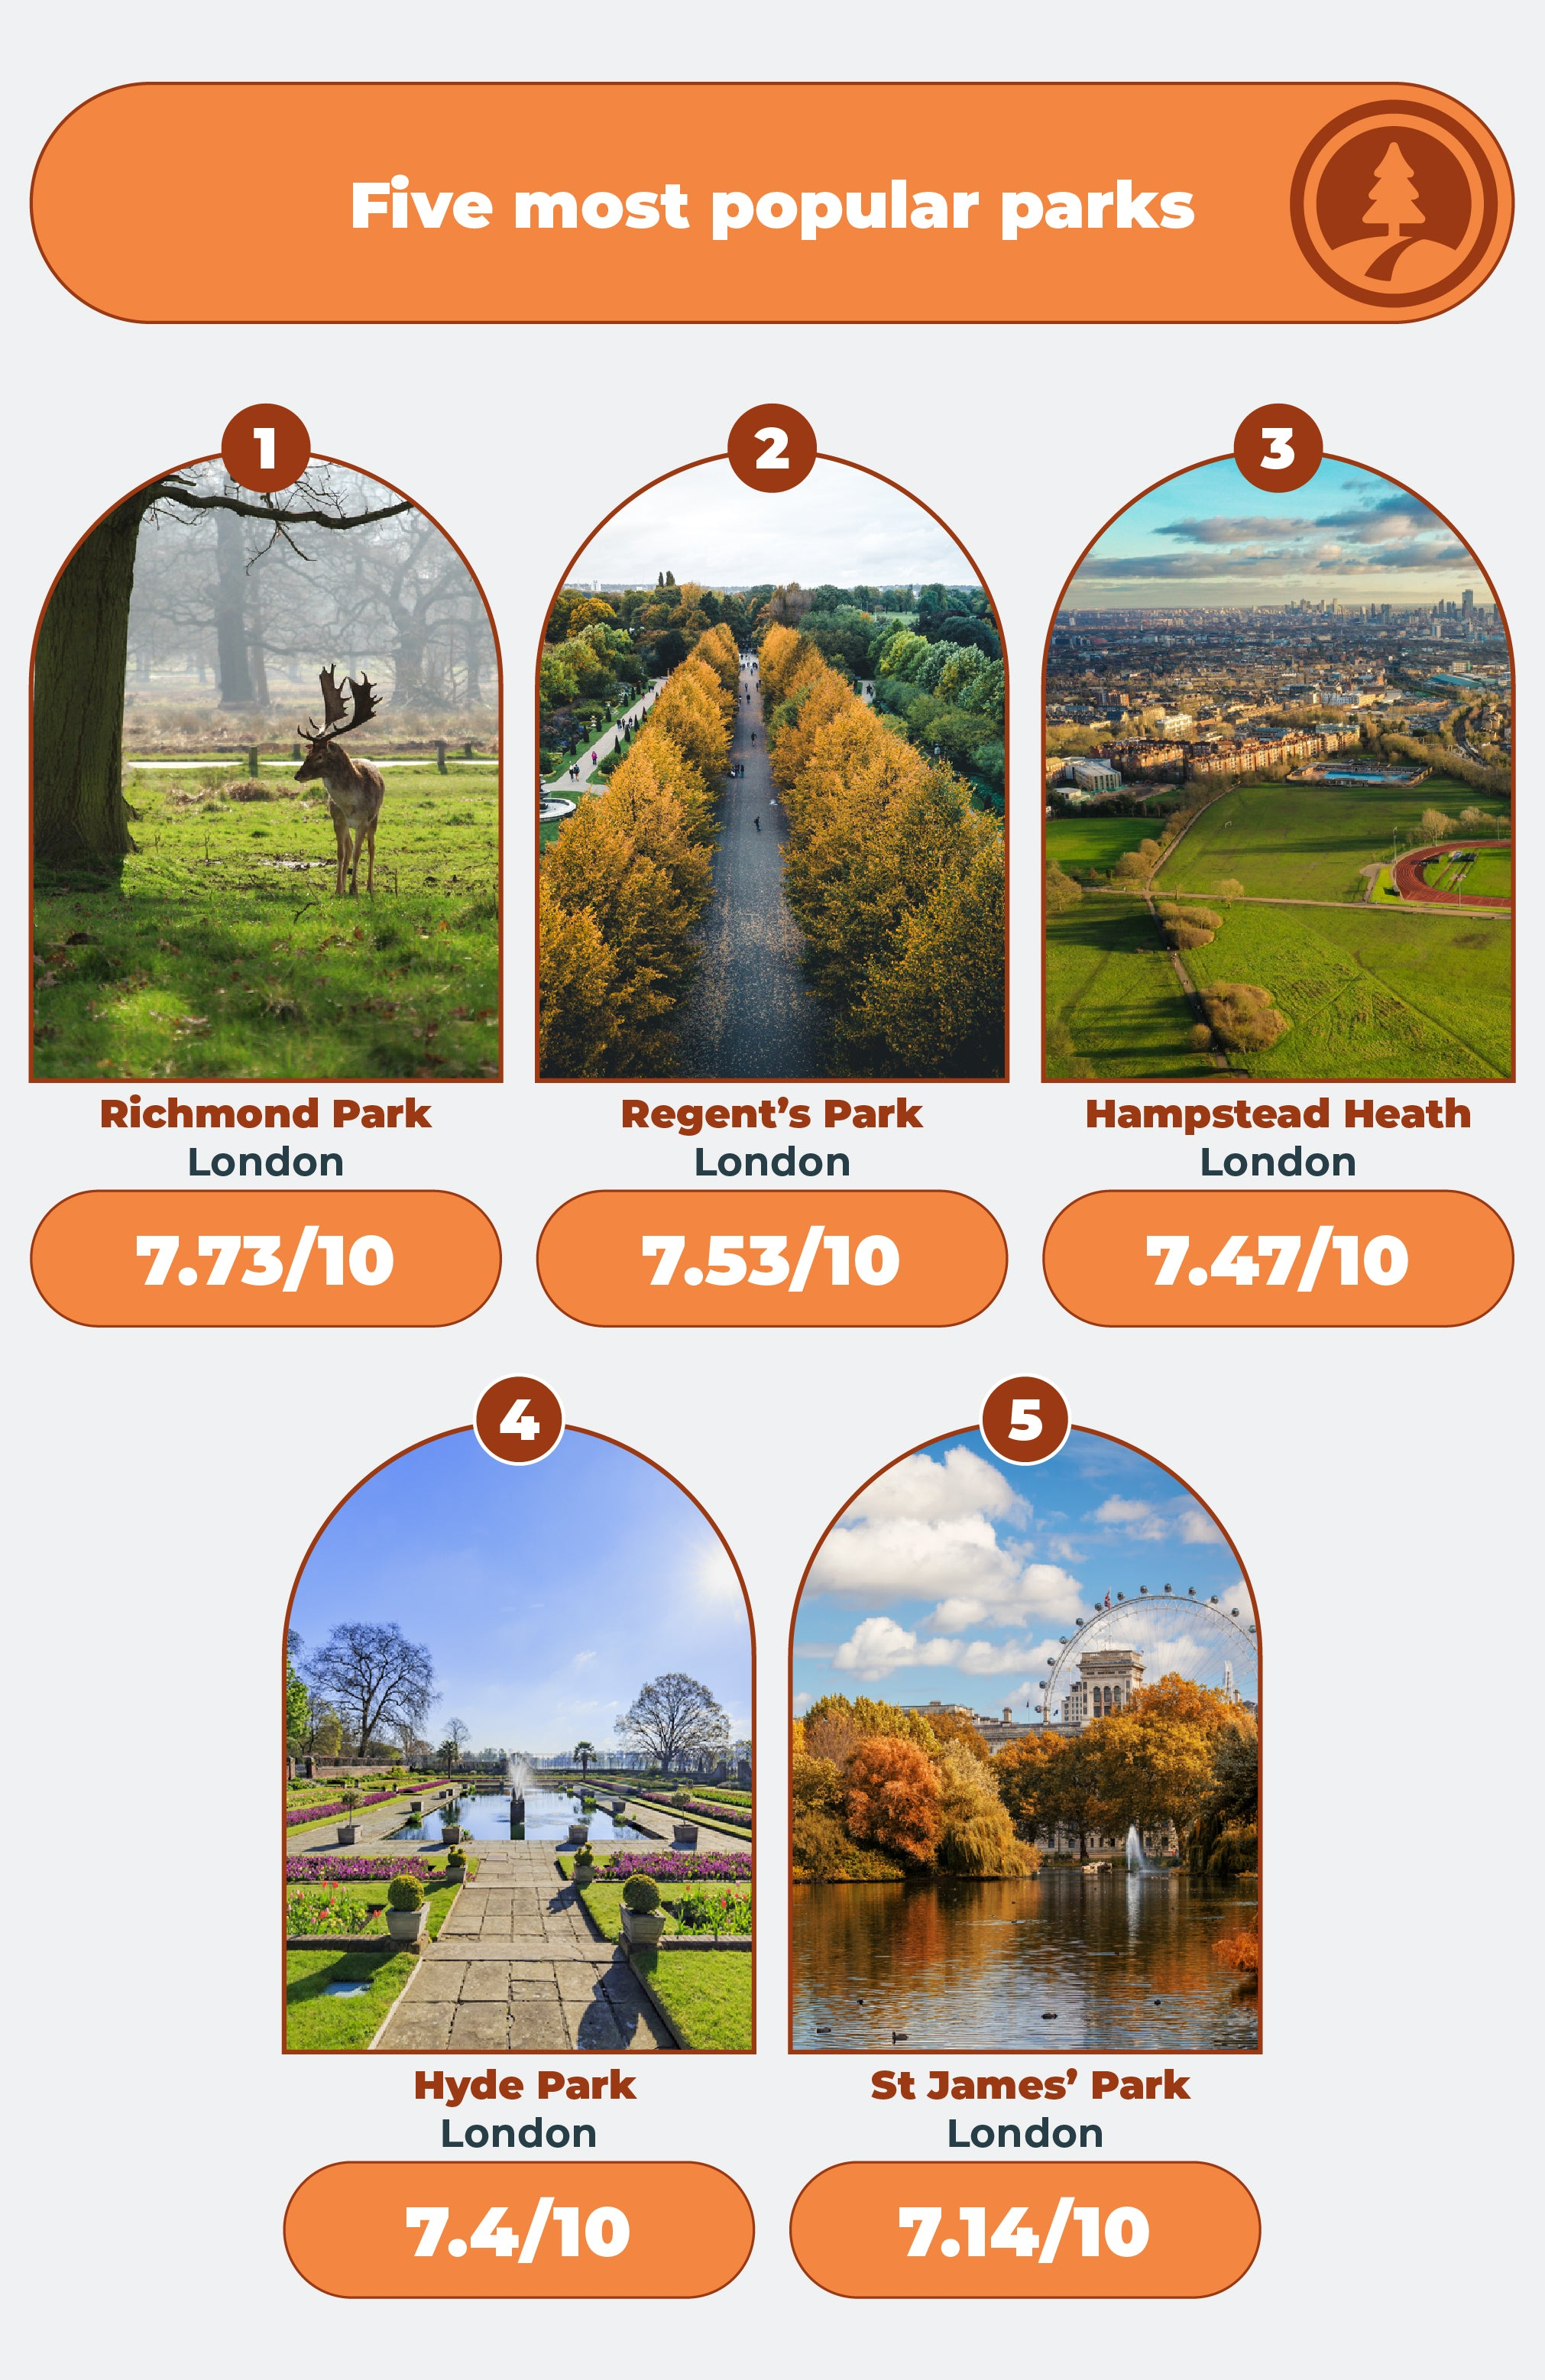 Top 5 most popular parks in London